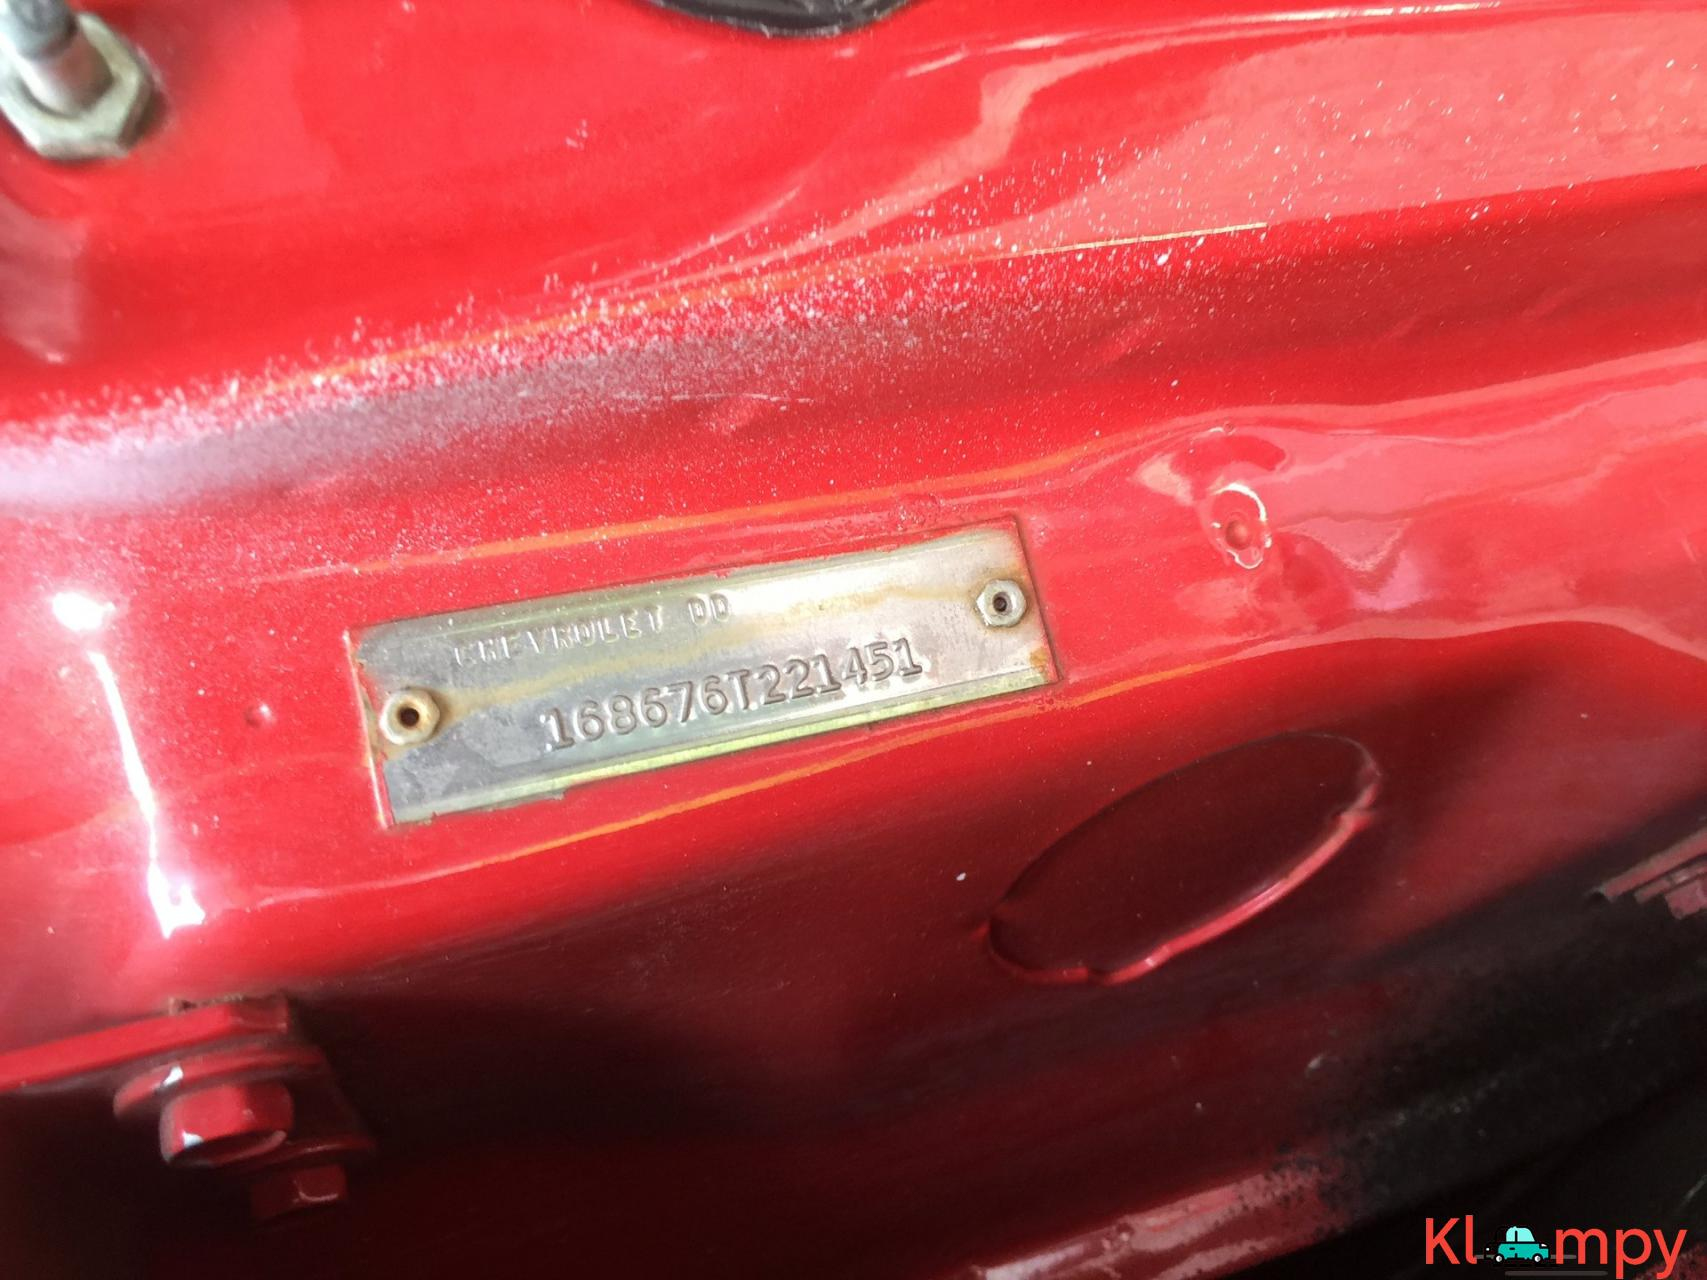 1966 Chevrolet Impala SS Convertible Regal Red V8 - 17/23